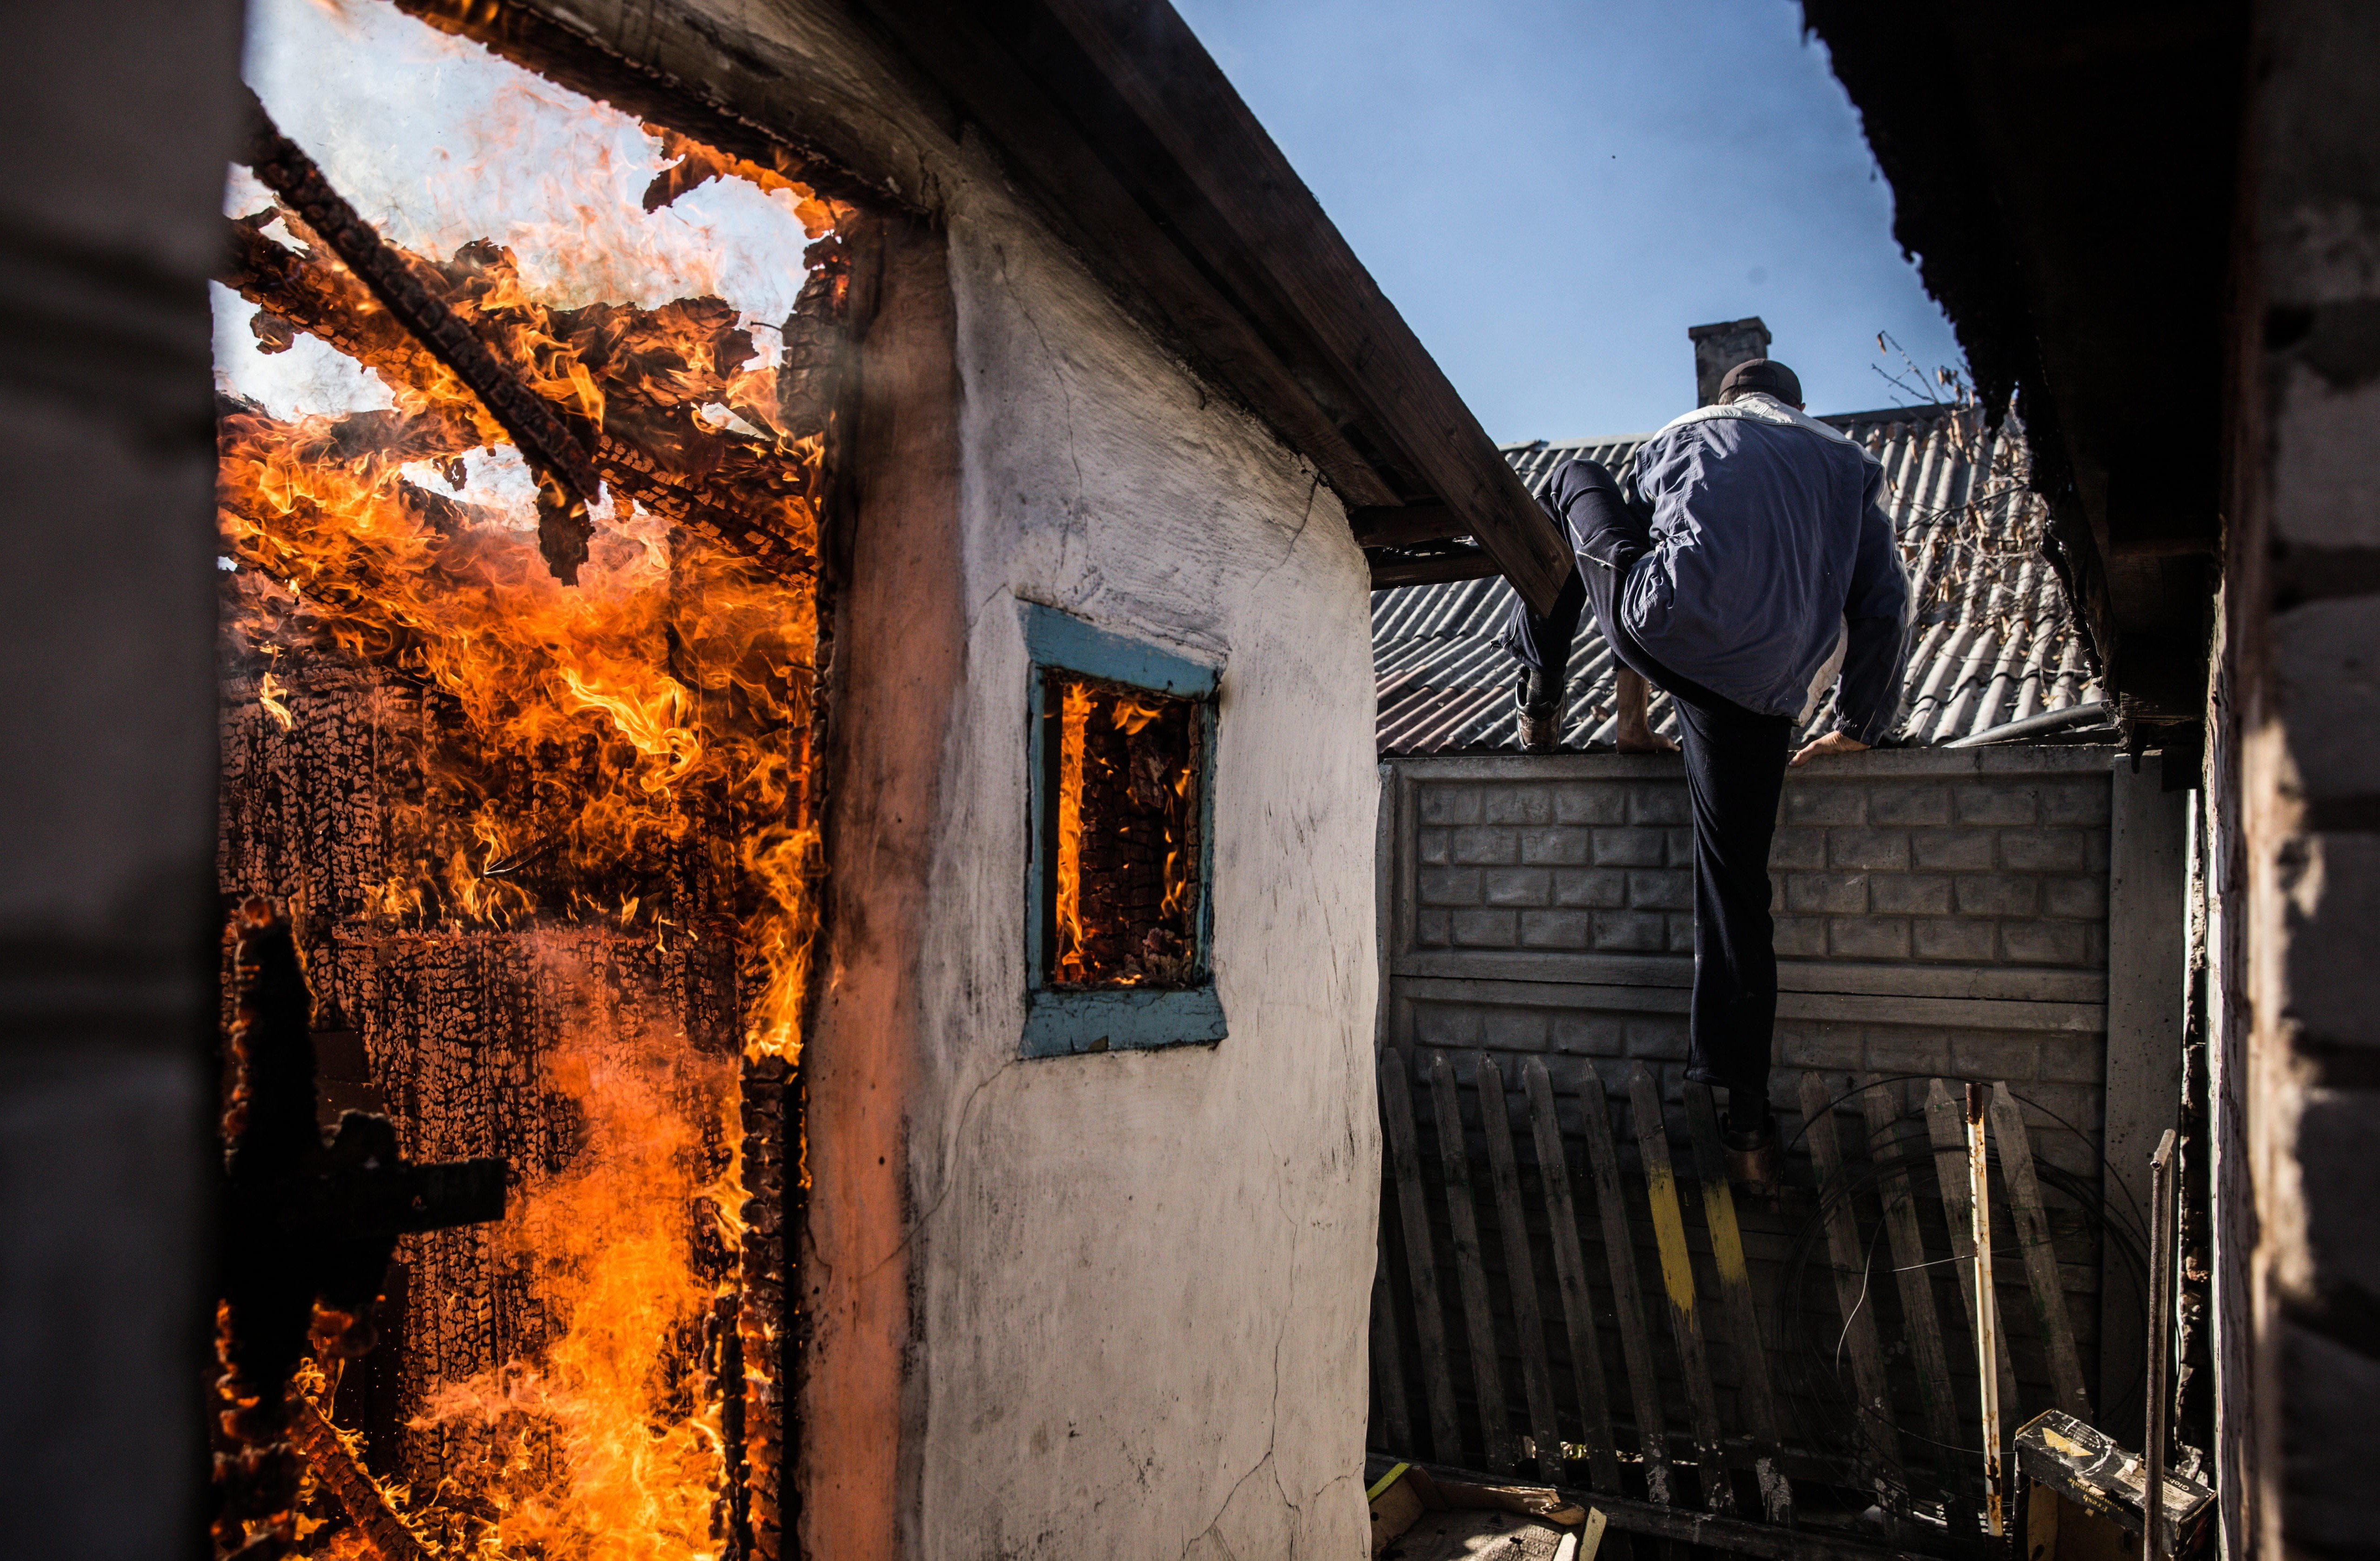 A house on fire in the aftermath of an overnight shelling attack in Donetsk, Ukraine on Nov. 9, 2014.